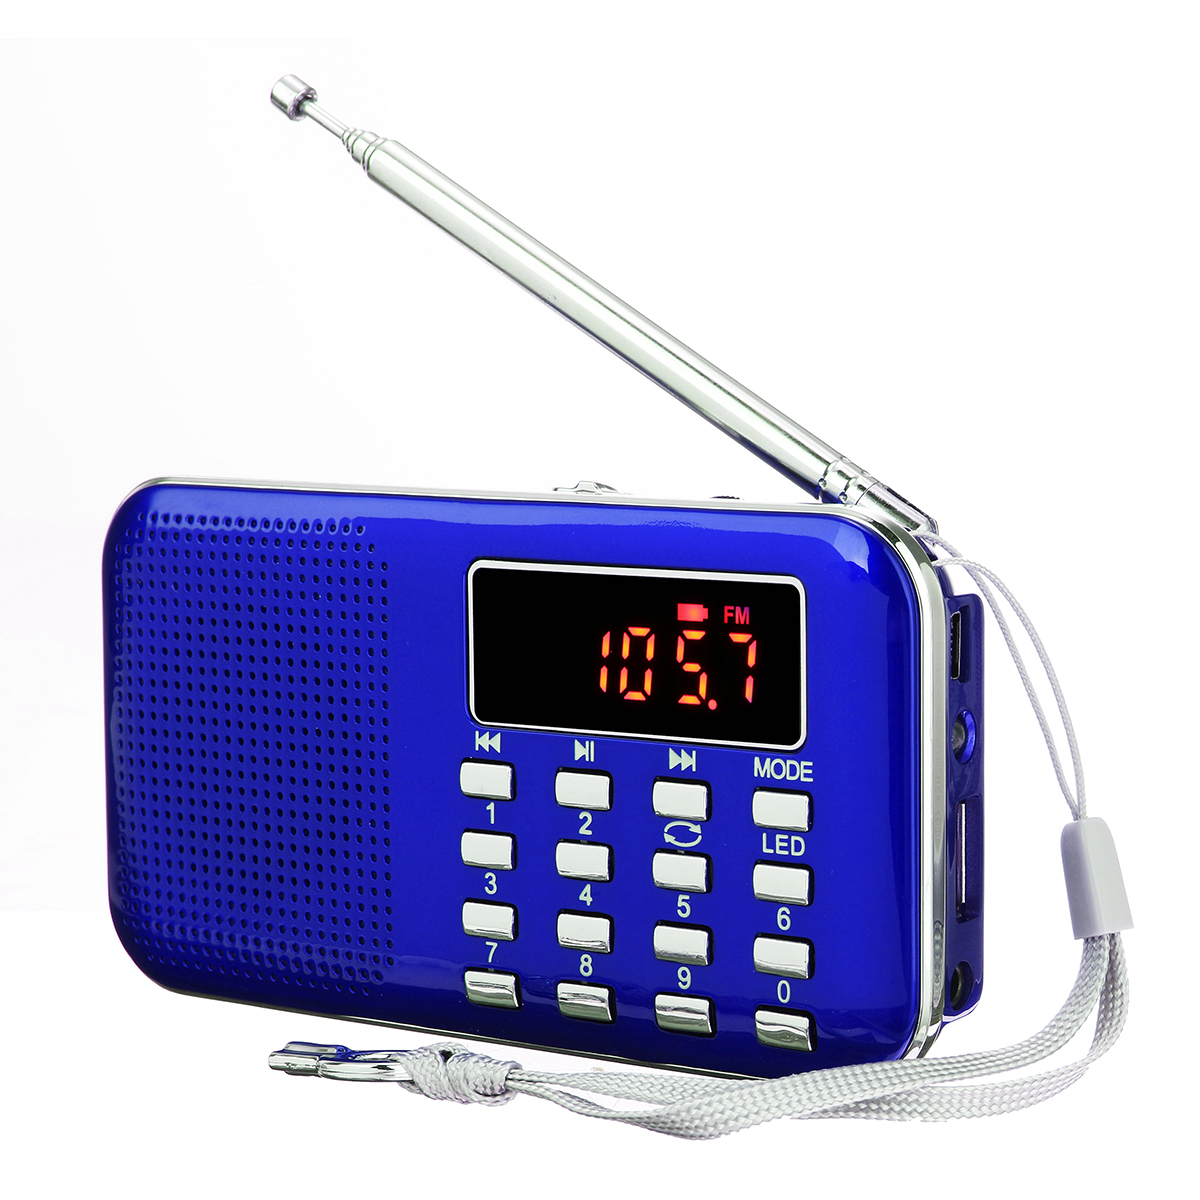 Portable Mini LED Display AM FM Radio Clear Speaker Music Player With Flashlight AUX/TF/USB Disk Multifunction, Rechargeable Earphone Jack (L-218 )